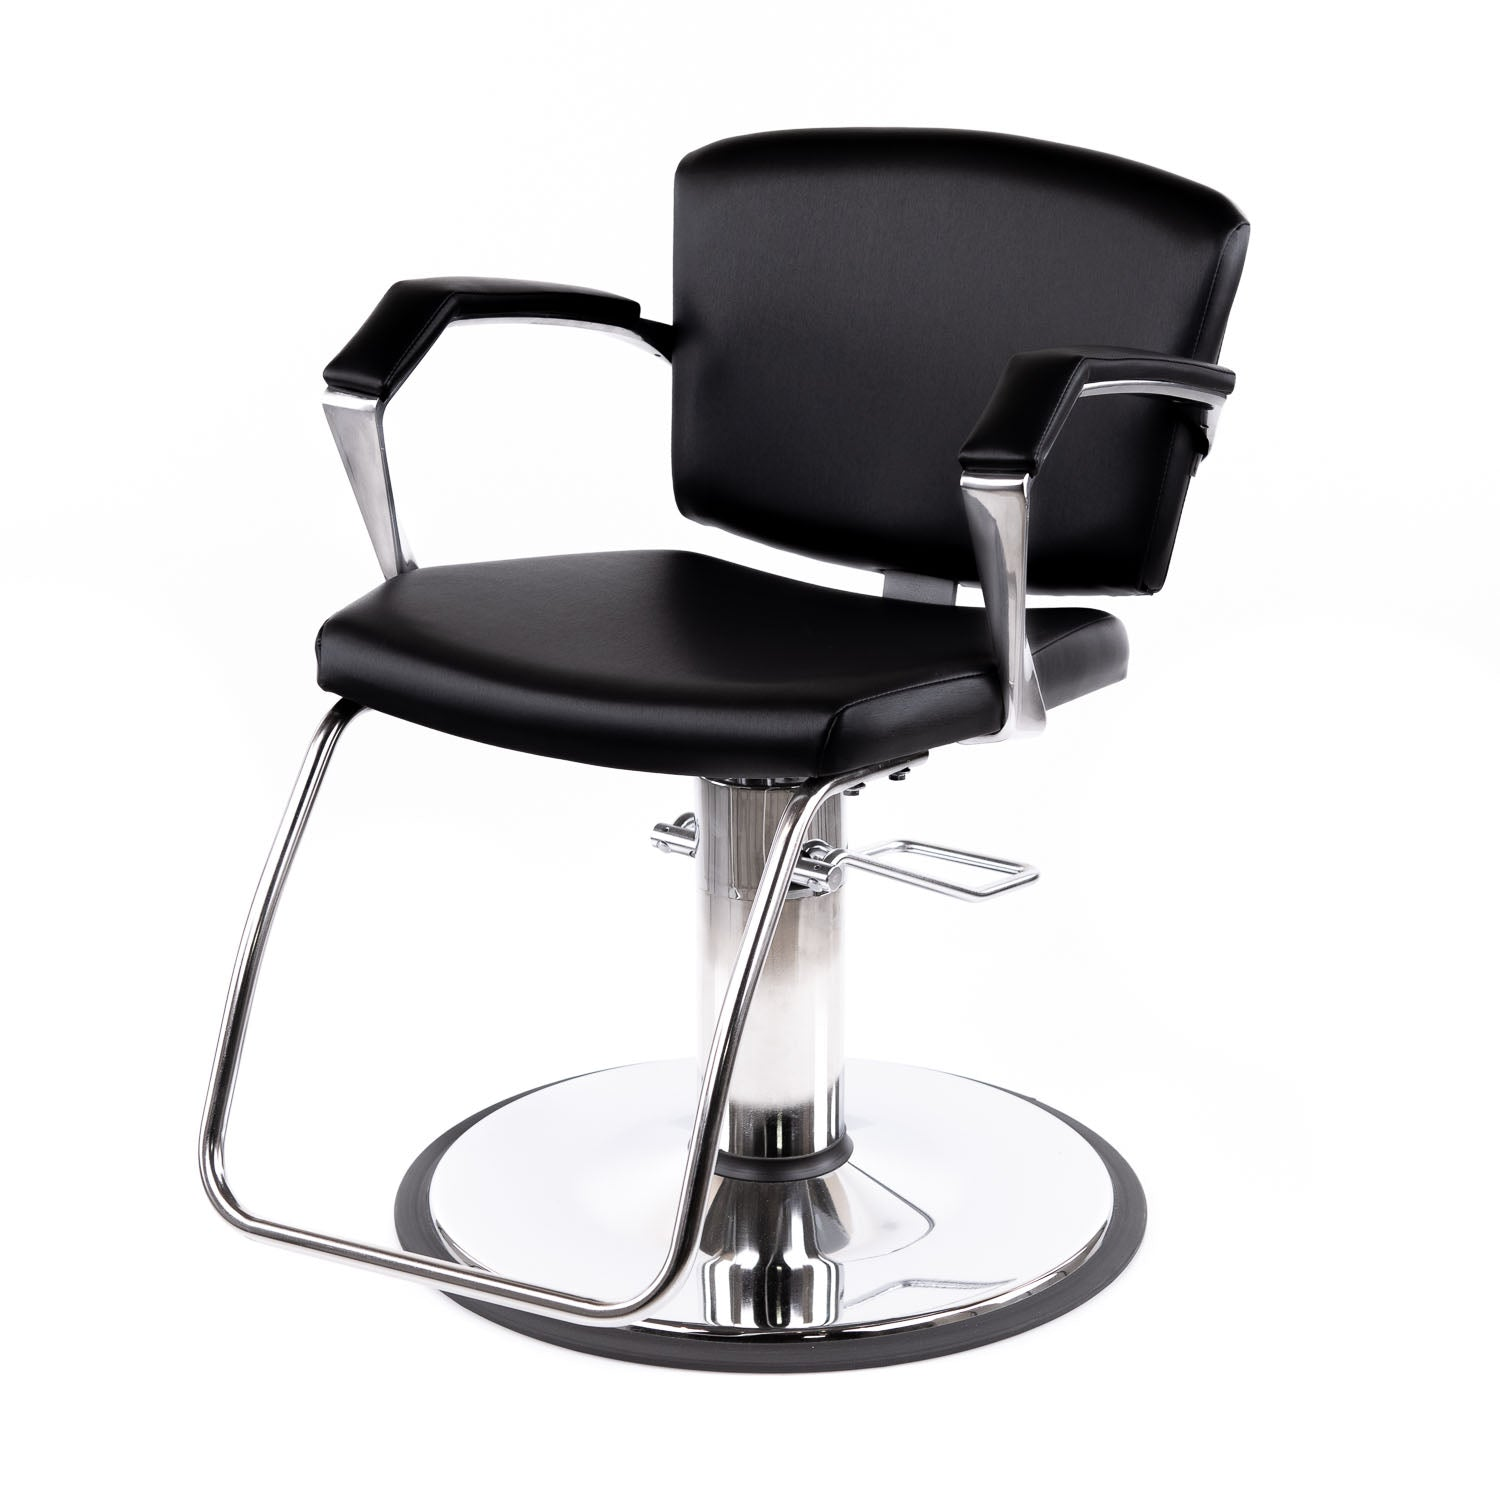 Adarna Styling Chair - Collins